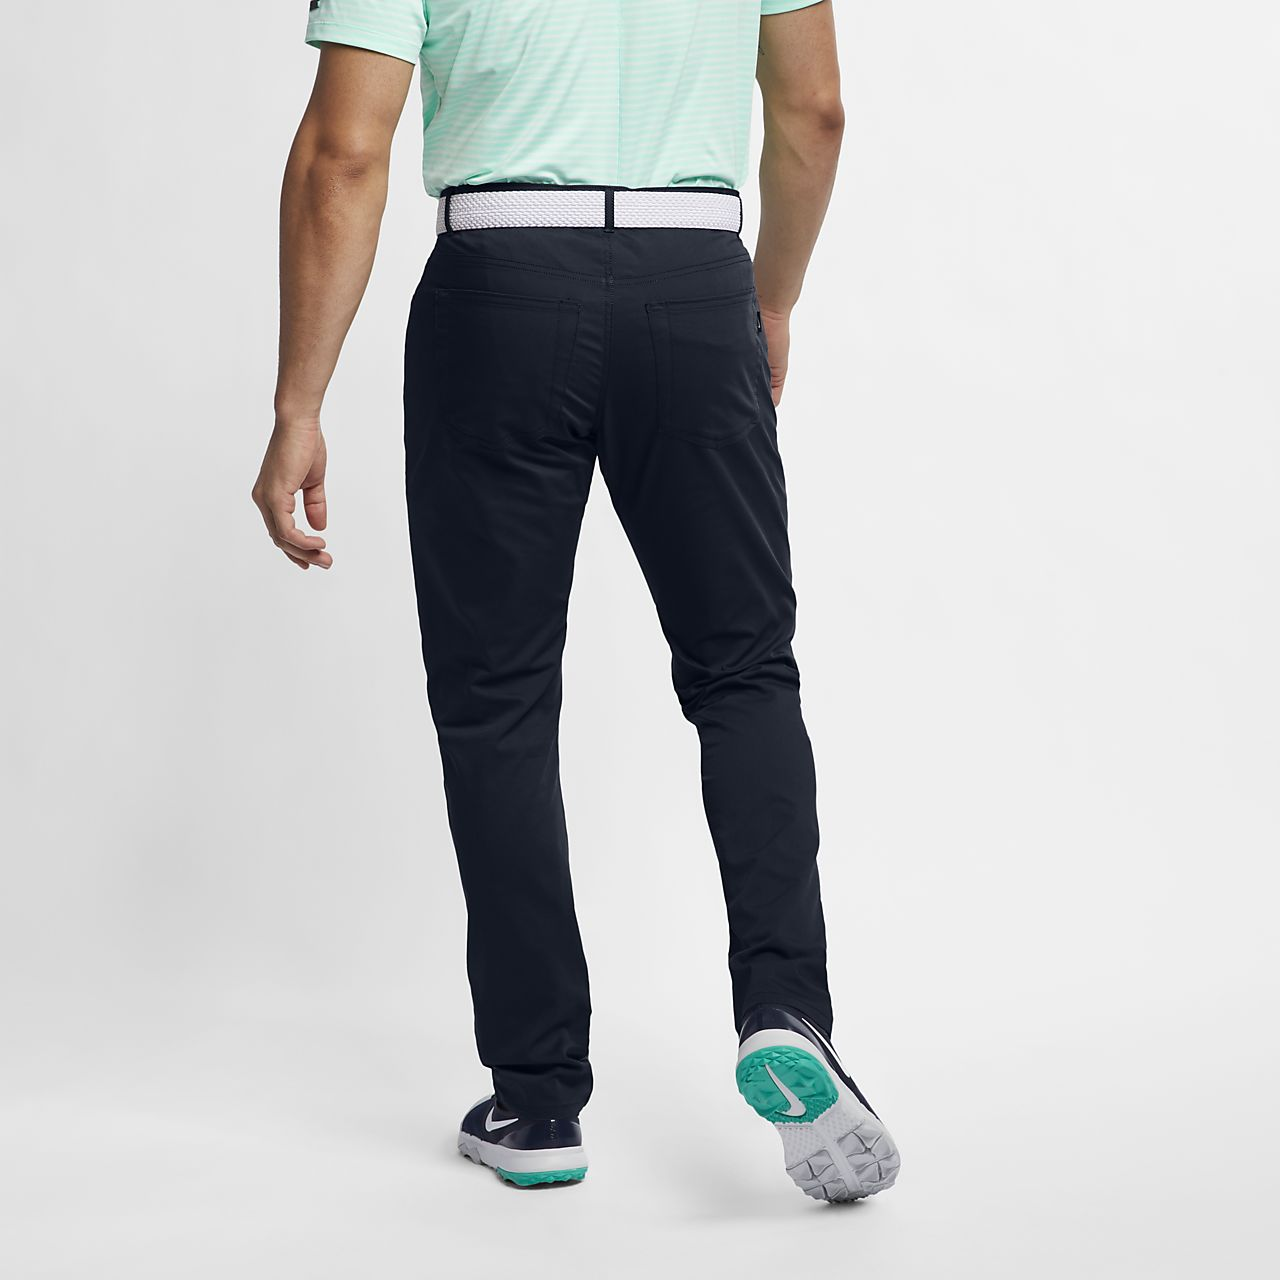 b8d93910bb723 Nike Flex Men s Slim Fit 5-Pocket Golf Pants. Nike.com